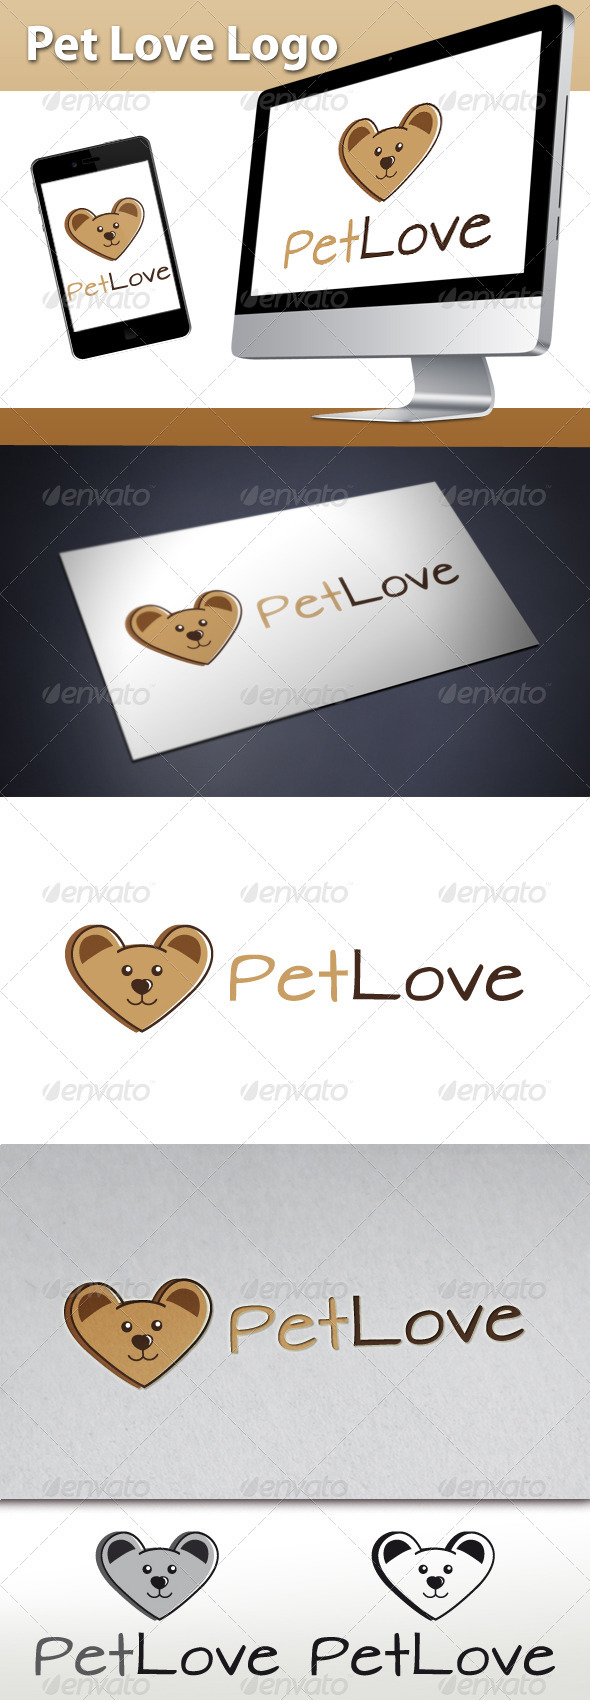 GraphicRiver Pet Love Logo 3284644